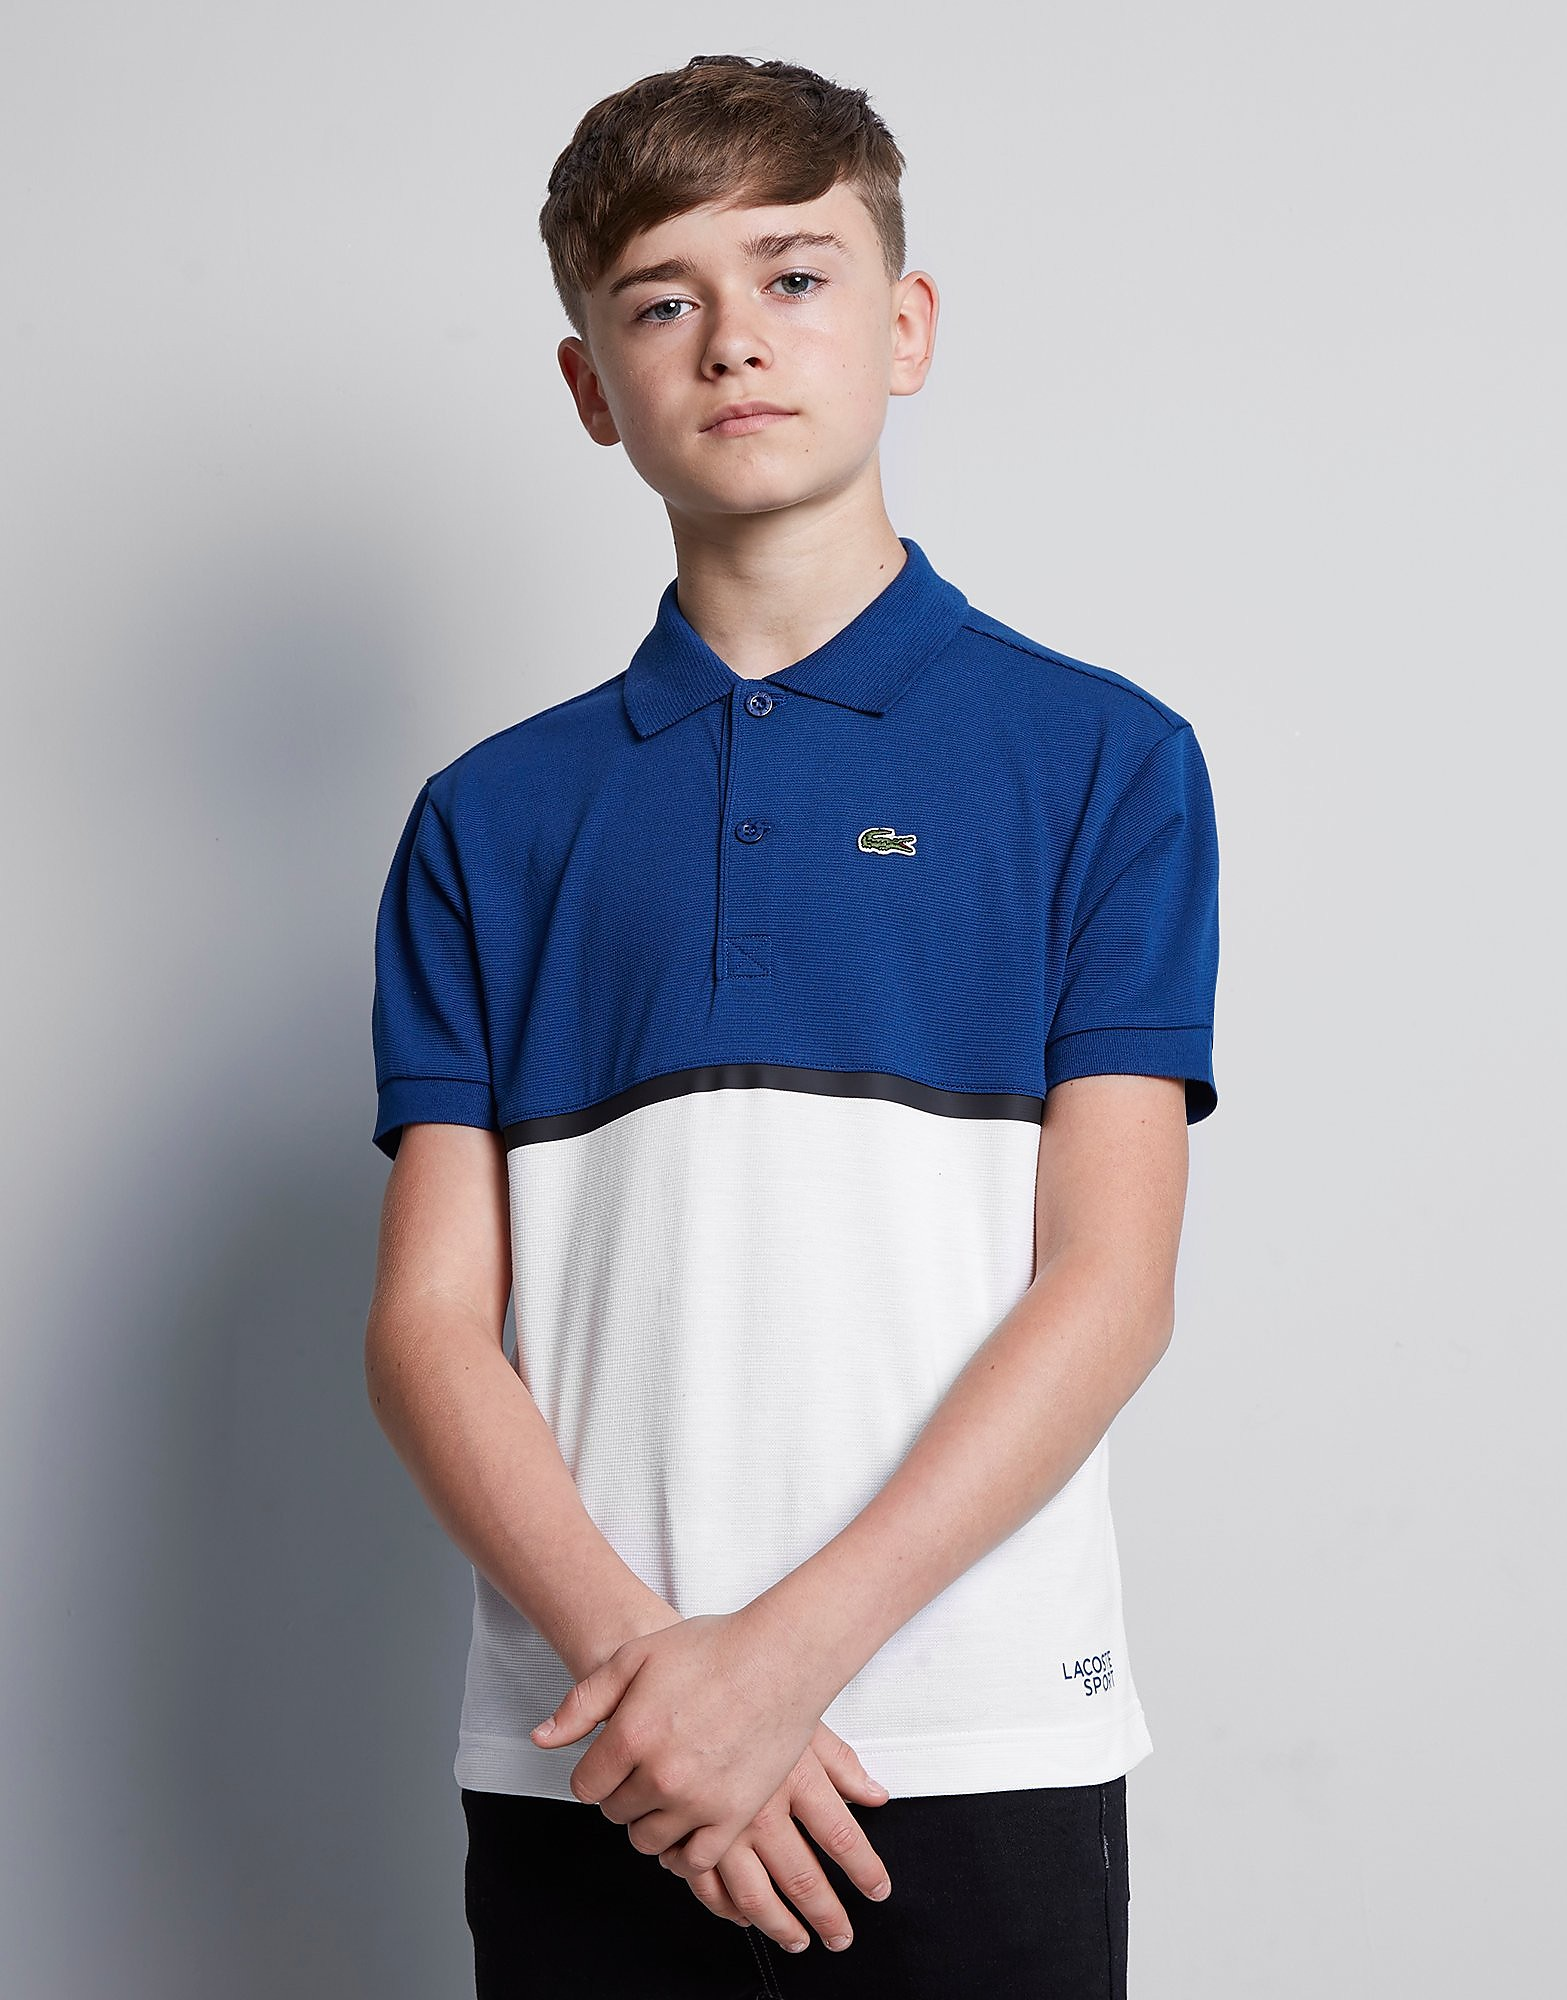 Lacoste Colour Block Polo Shirt Junior - Blauw - Kind